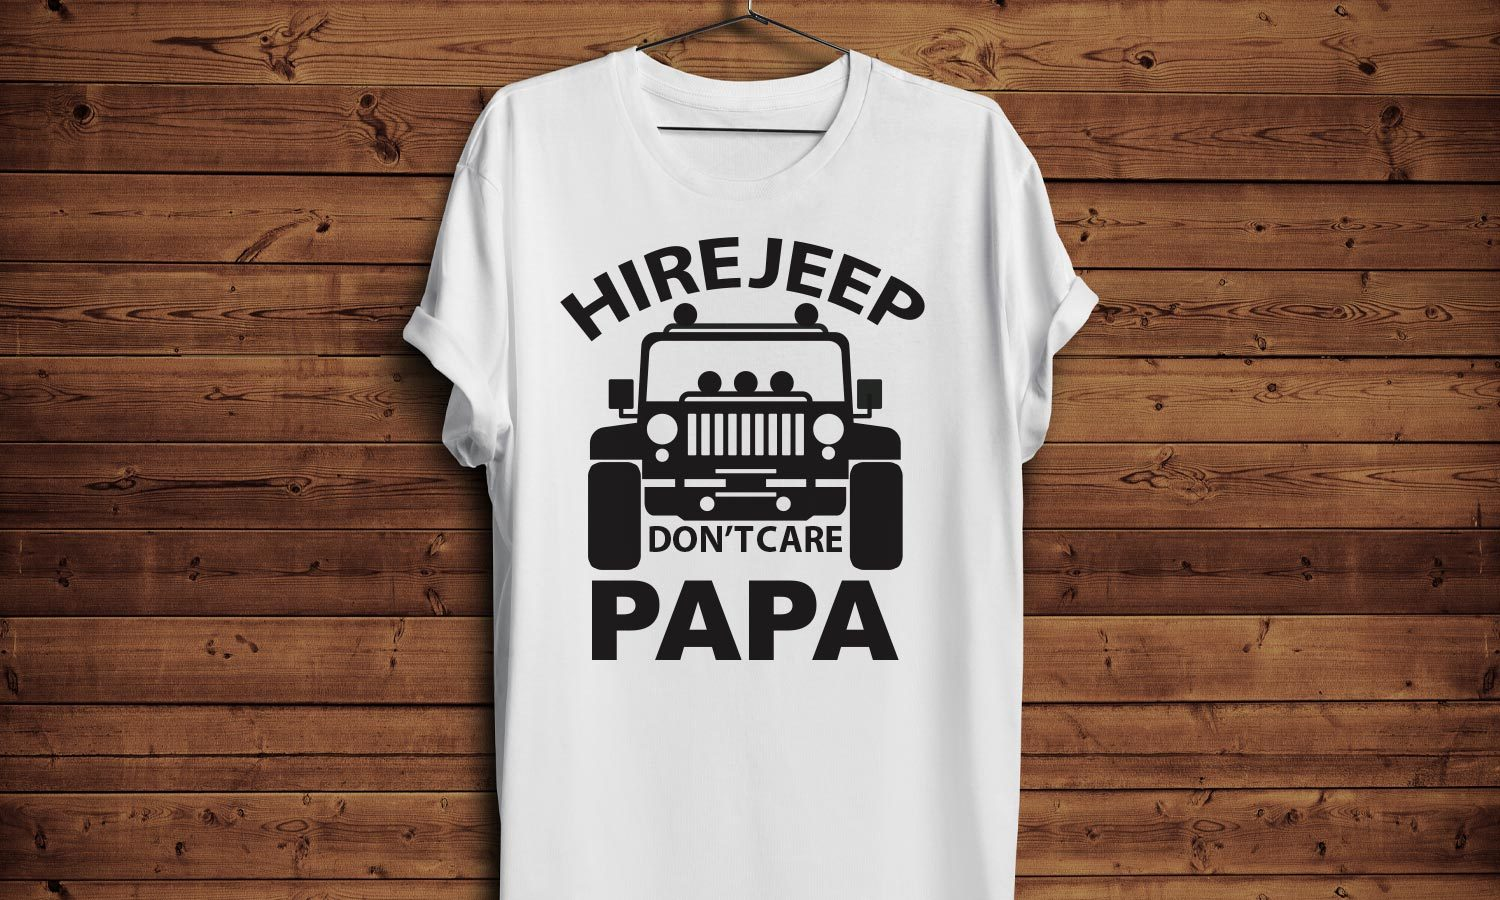 Hire Jeep - Printed T-Shirt for Men, Women and Kids - TS256